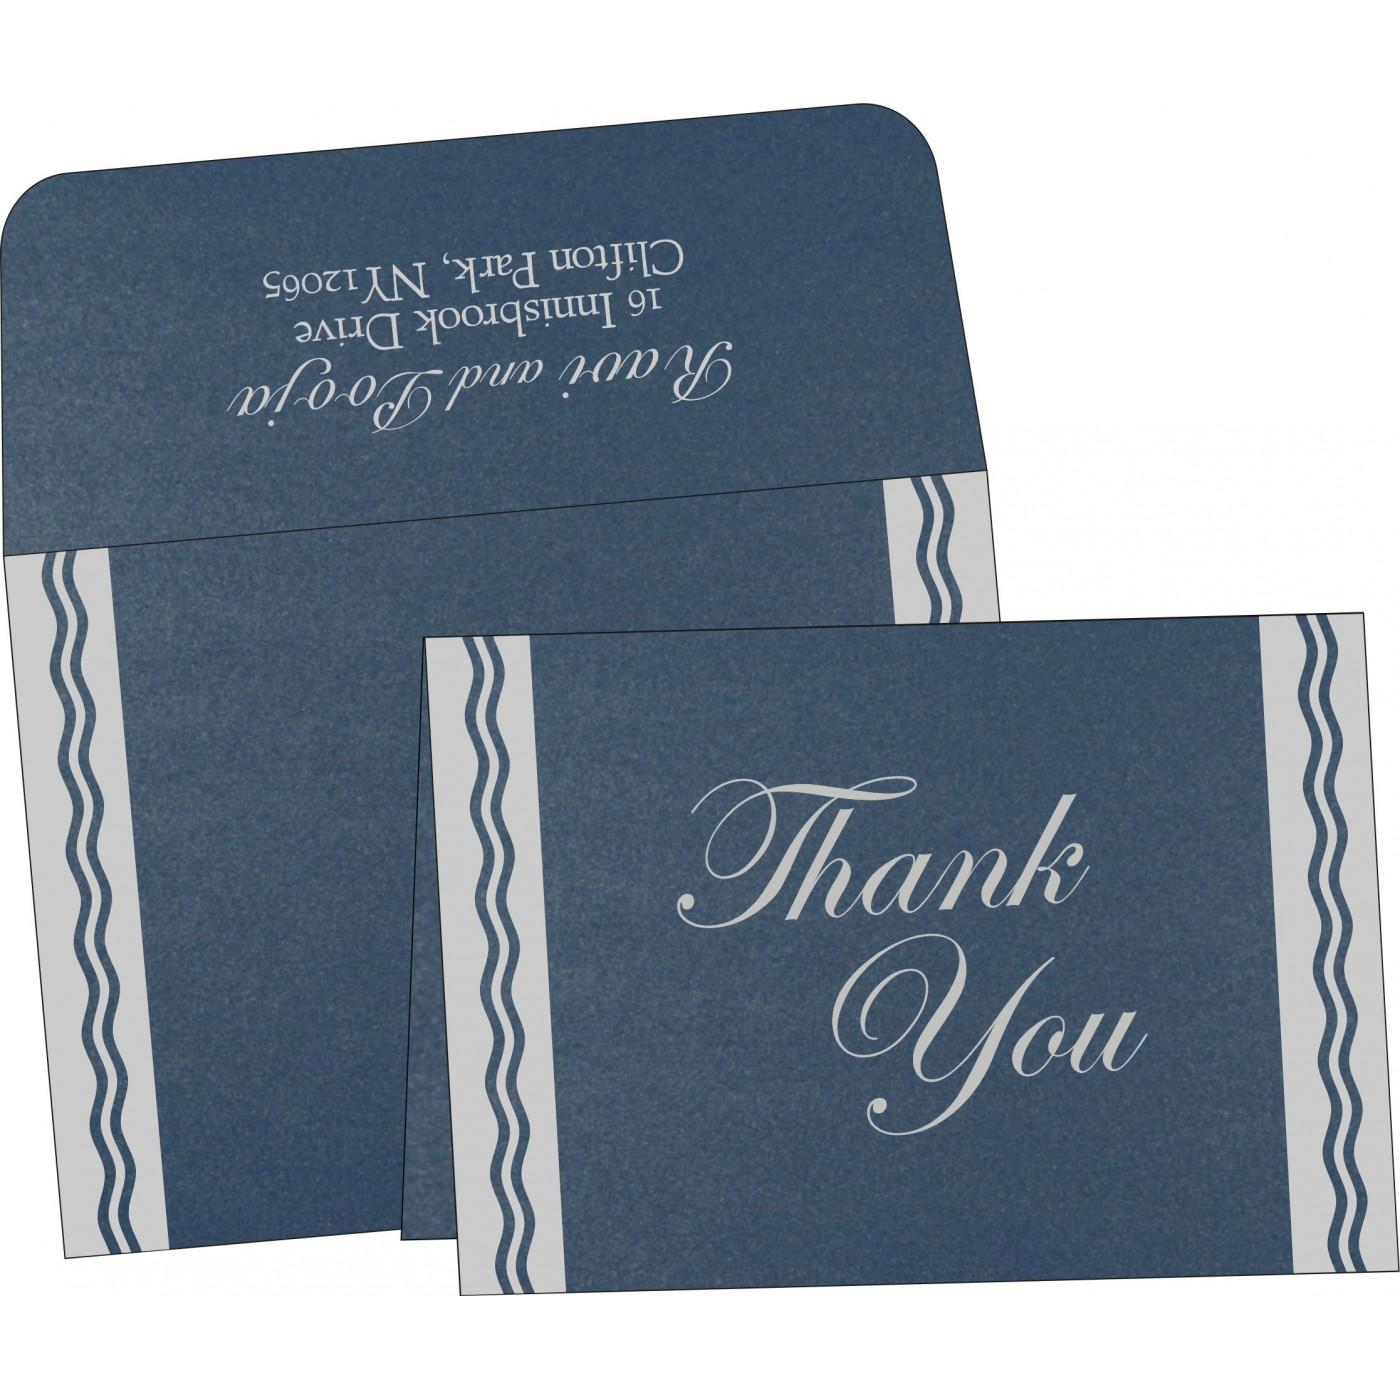 Thank You Cards - TYC-2179